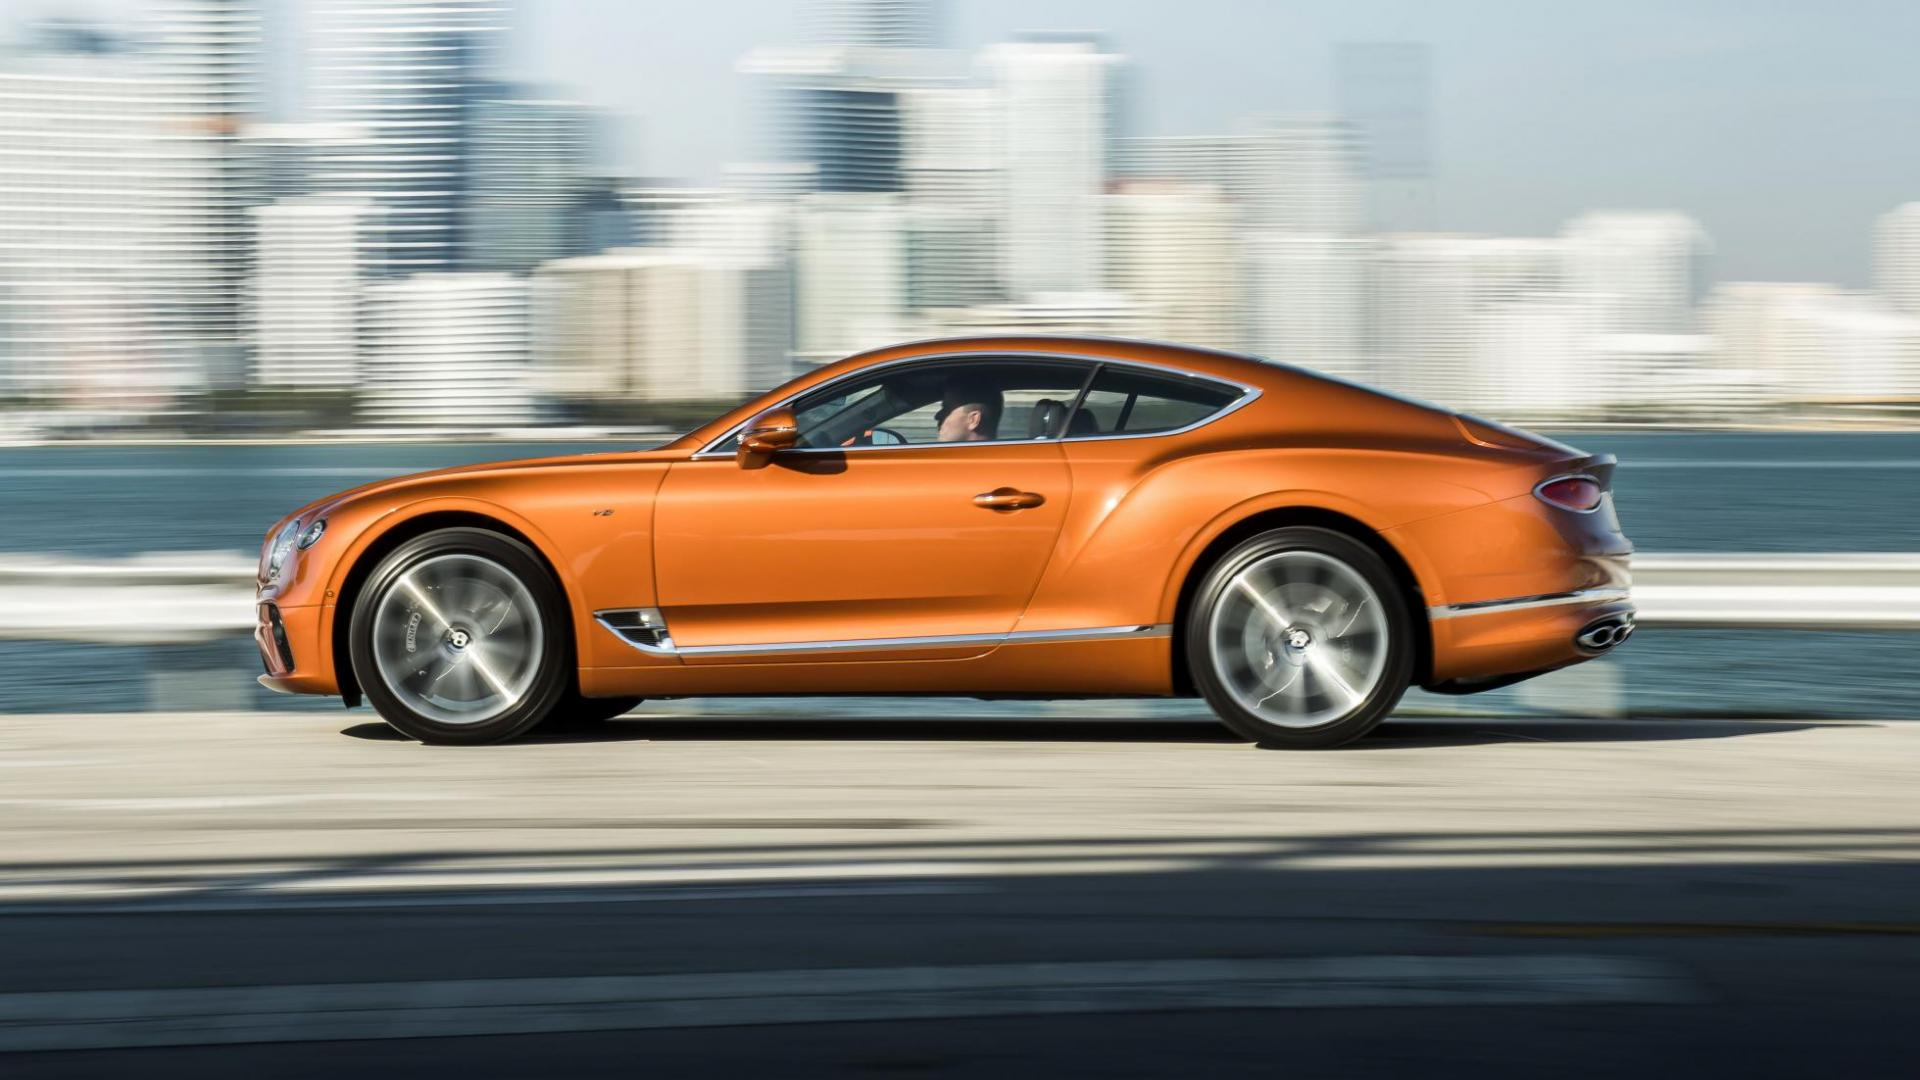 Bentley Continental GT V8 oranje